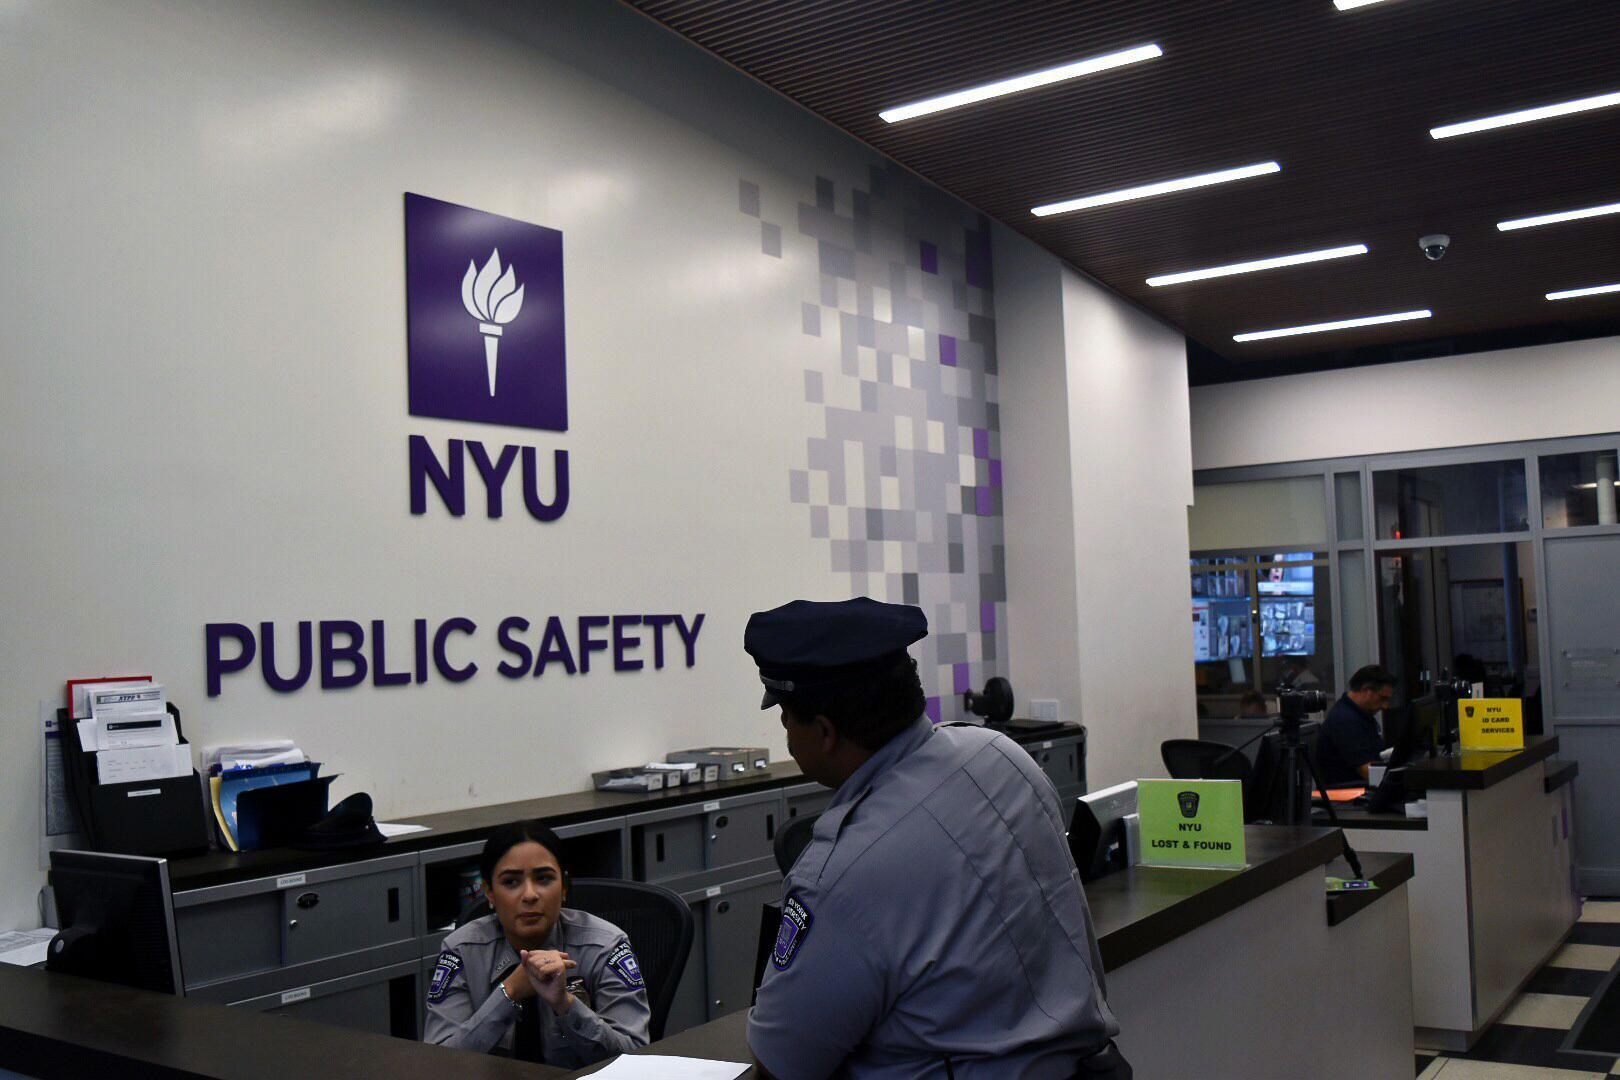 The NYU Public Safety Office, located at 7 Washington Place, is open 24/7 for whatever you may need.